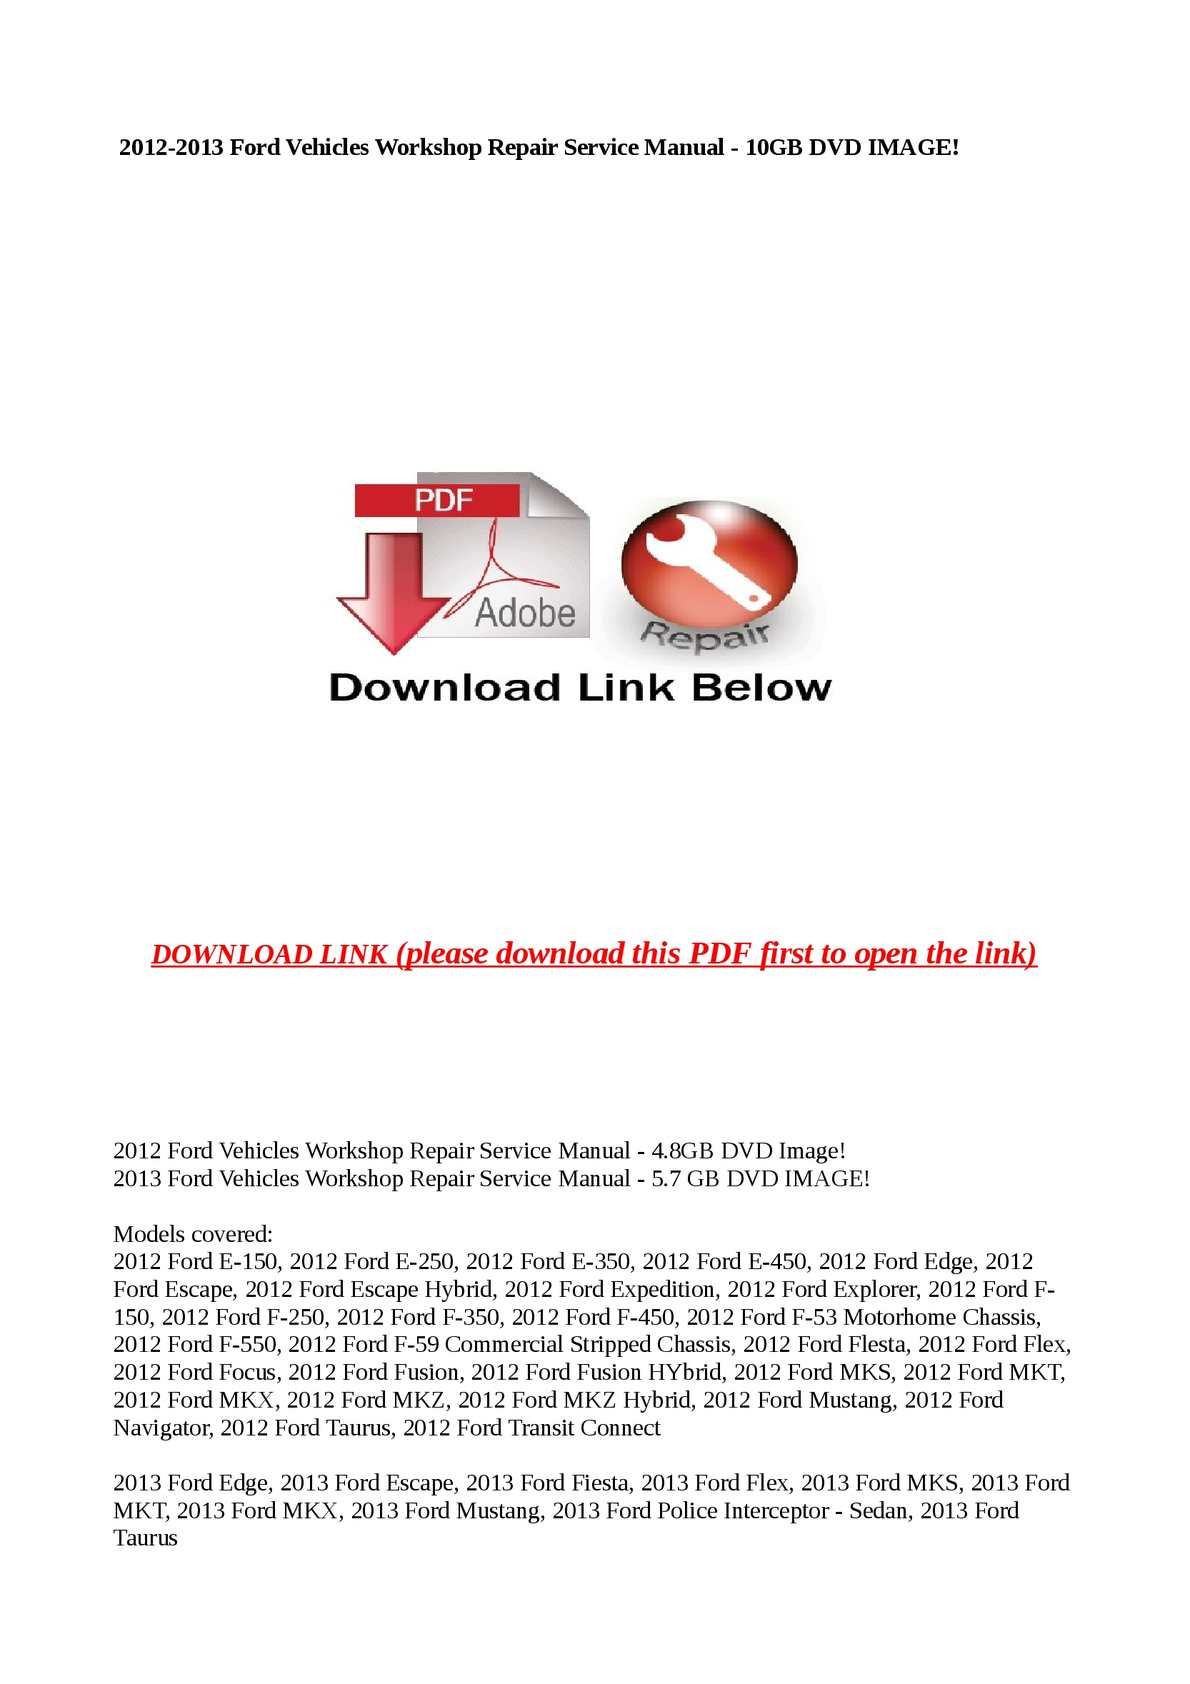 hight resolution of 2012 2013 ford vehicles workshop repair service manual 10gb dvd image